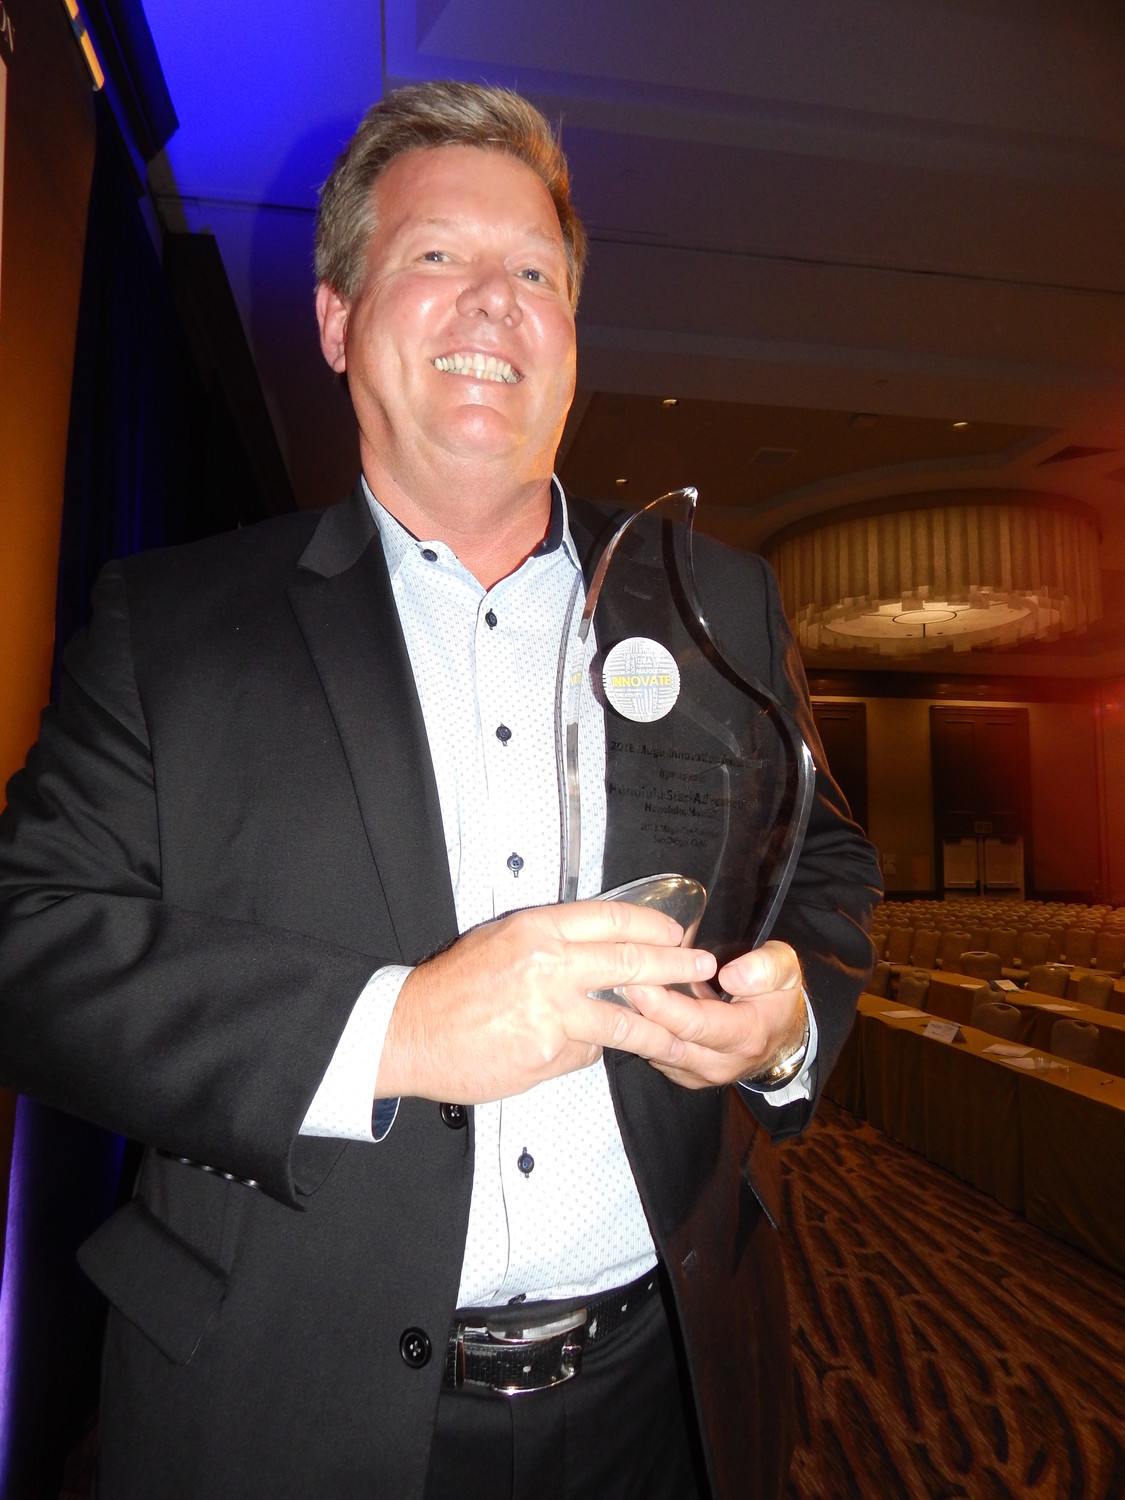 Honolulu Star-Advertiser, recipient of the 2018 Mega-Innovation Award. The award was accepted by David Kennedy, chief revenue officer, Oahu Publications, Inc